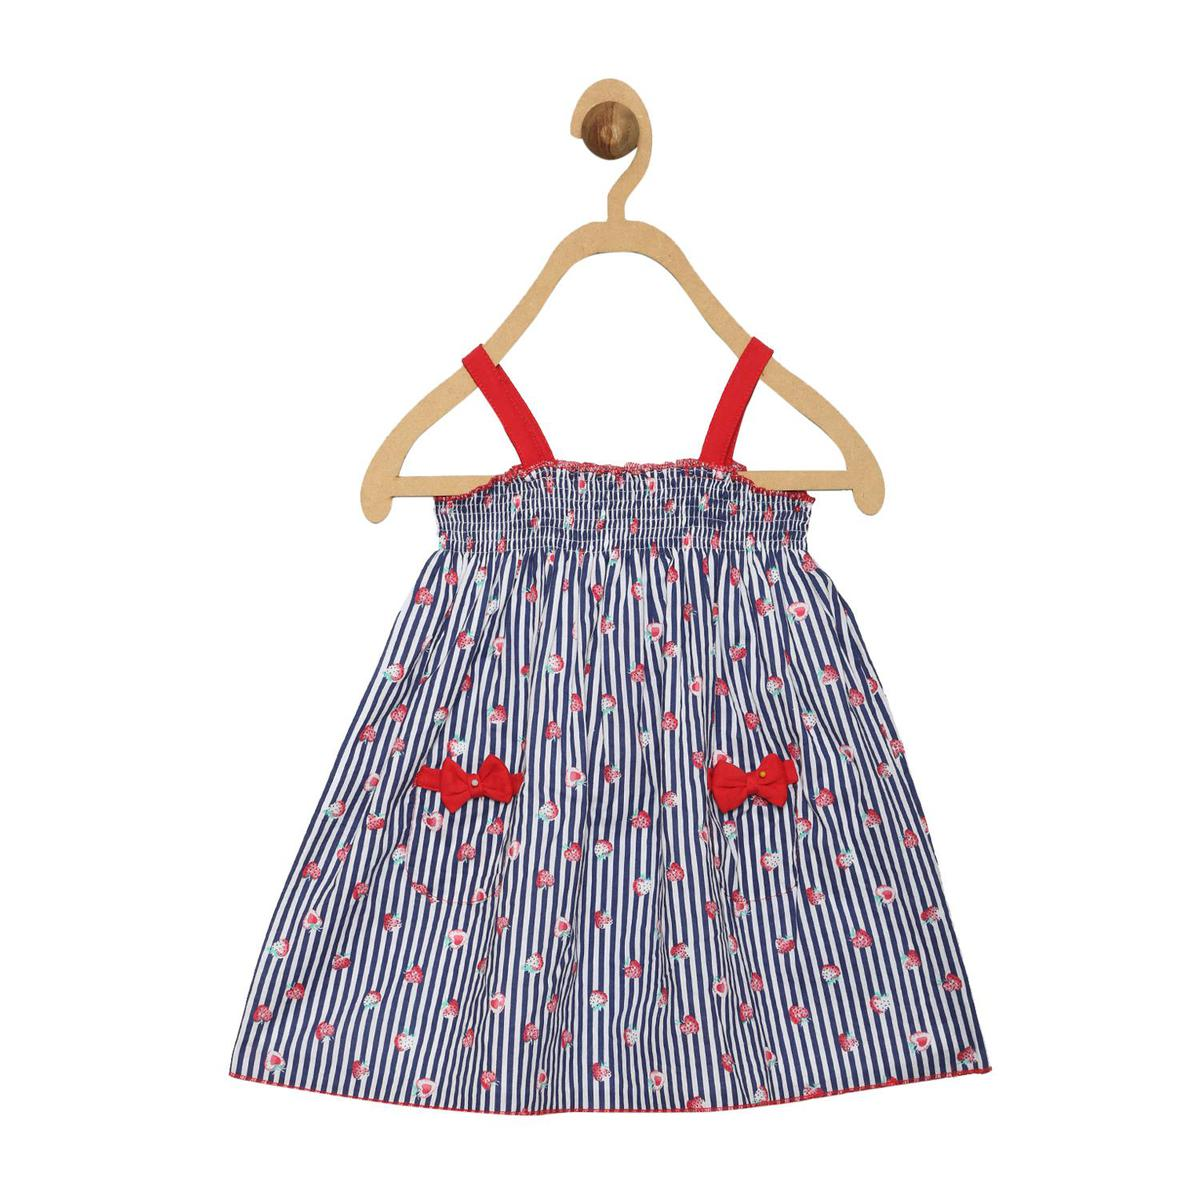 612 League - Navy Colored Casual Strawberry Print Cotton Dress For Baby Girls